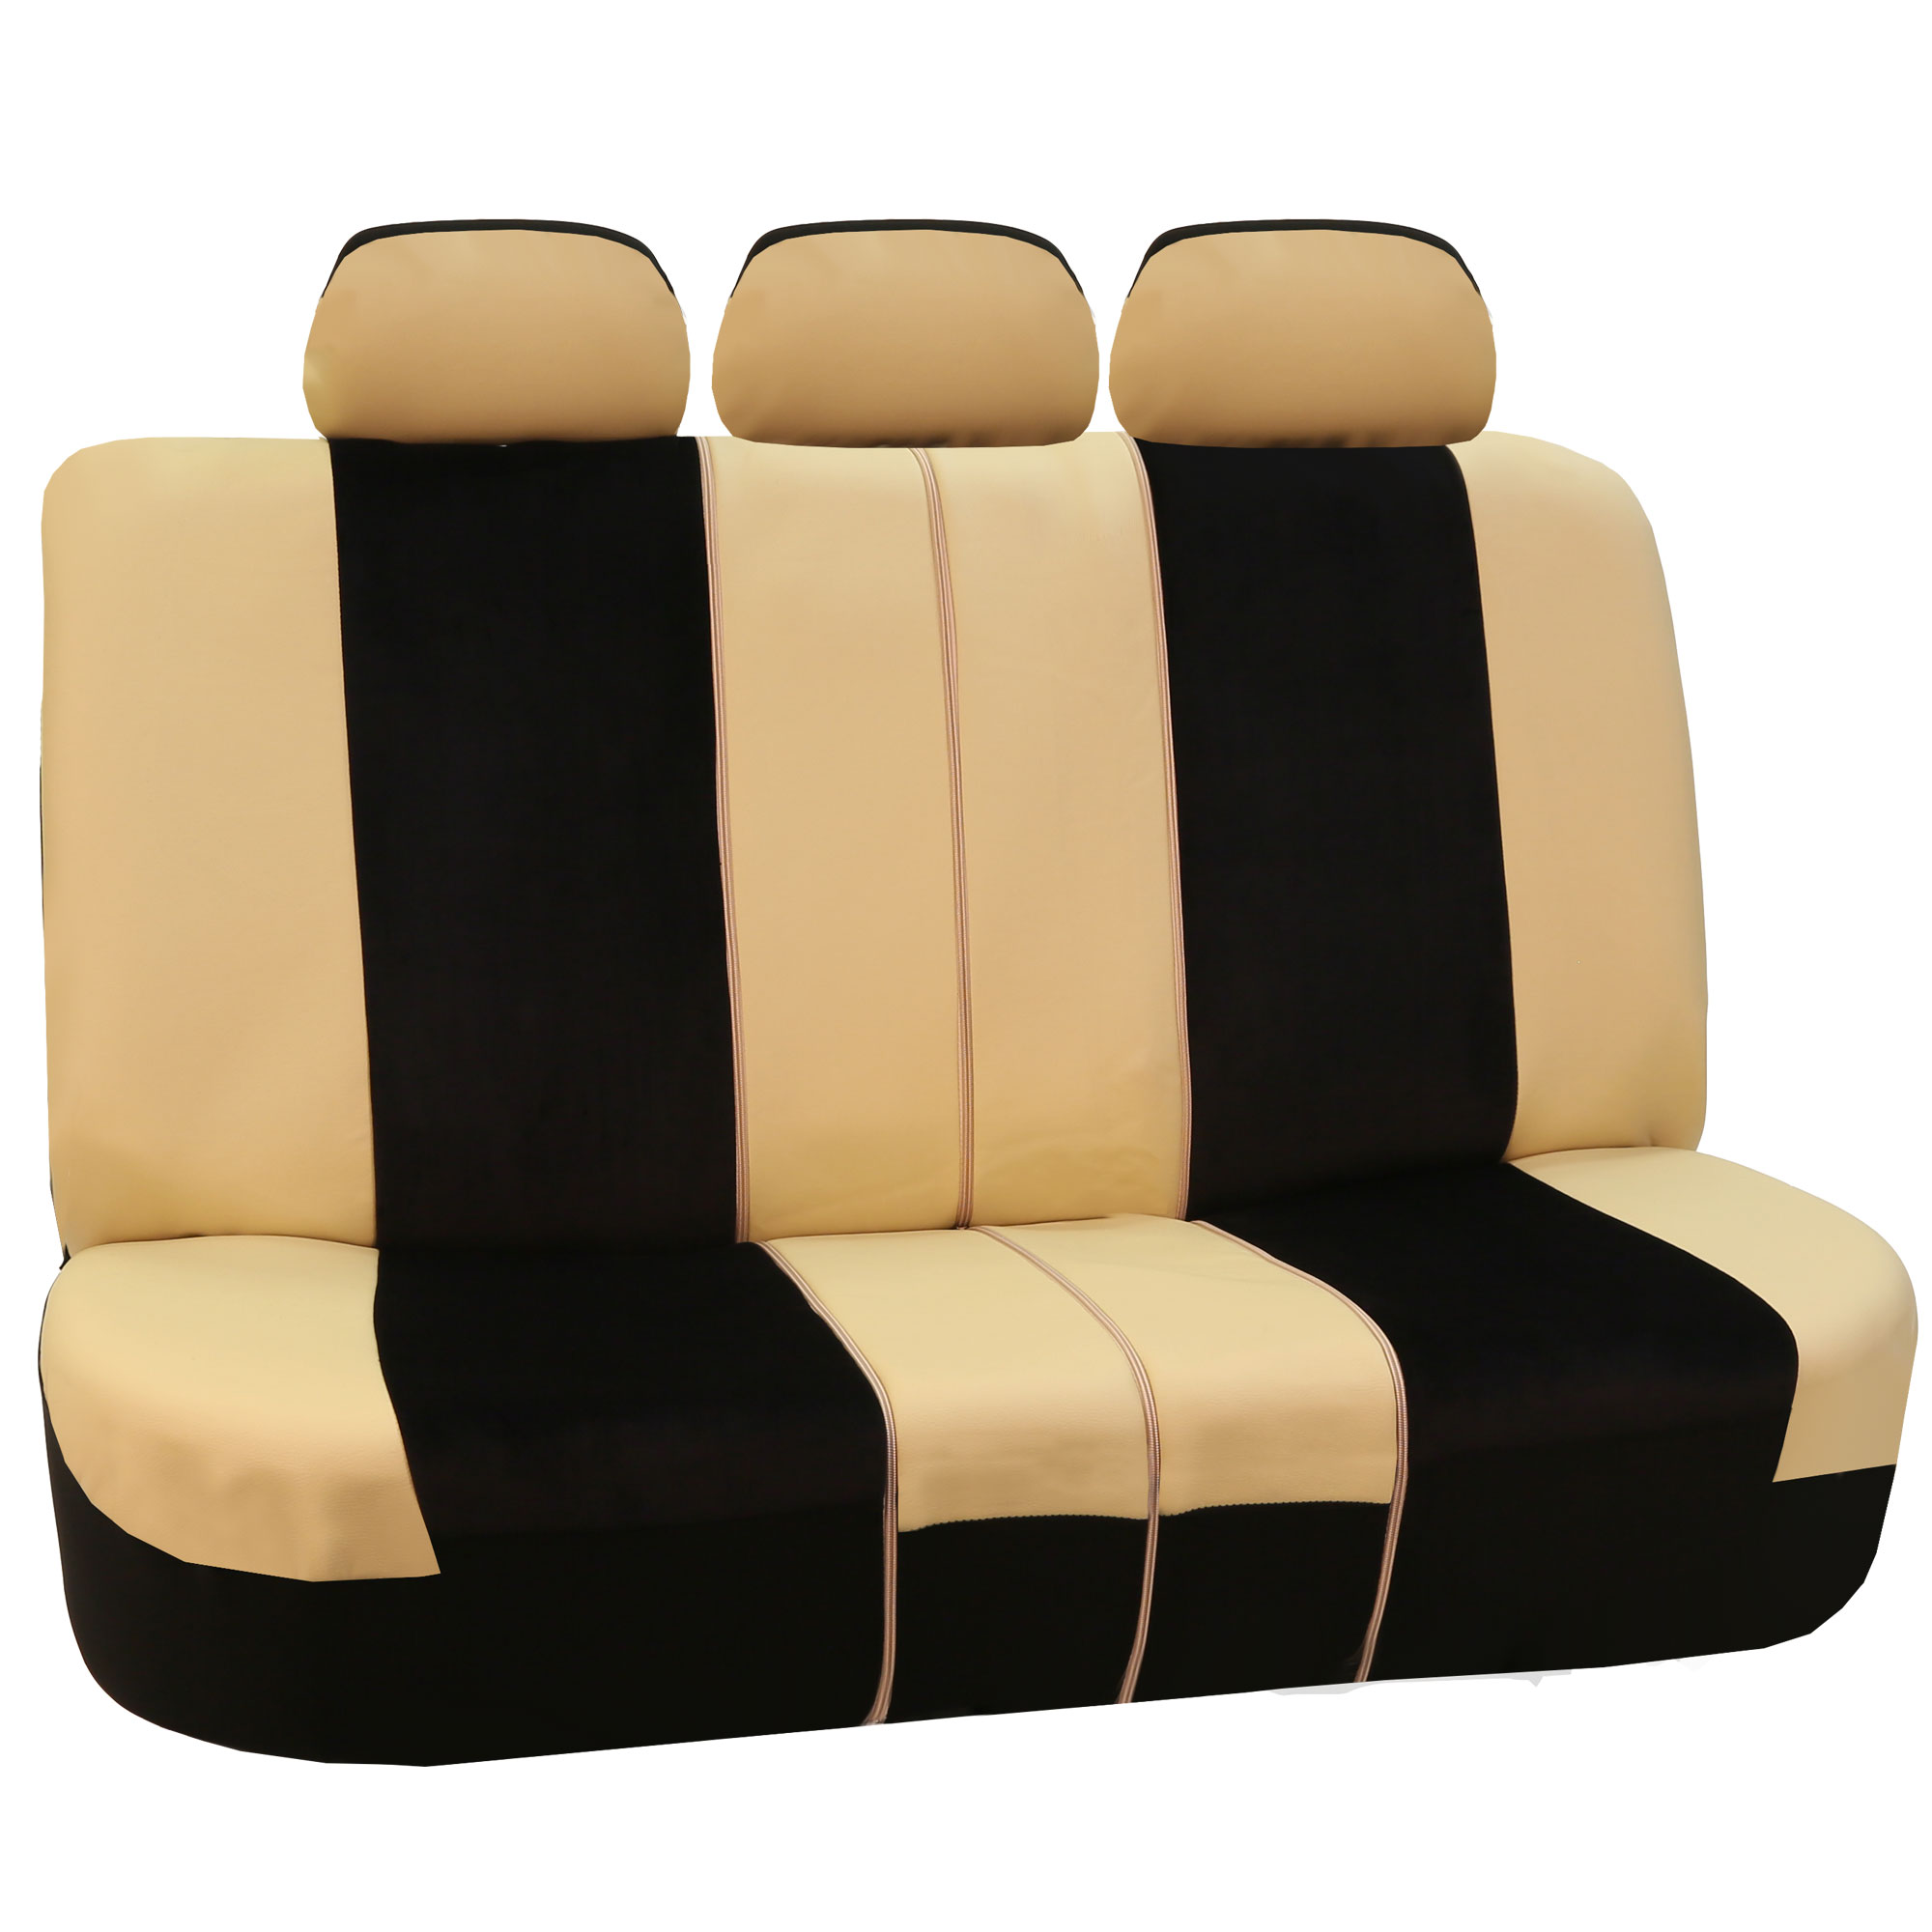 chair cover velour theater chairs with cup holders leather car seat covers sport luxury top quality ebay